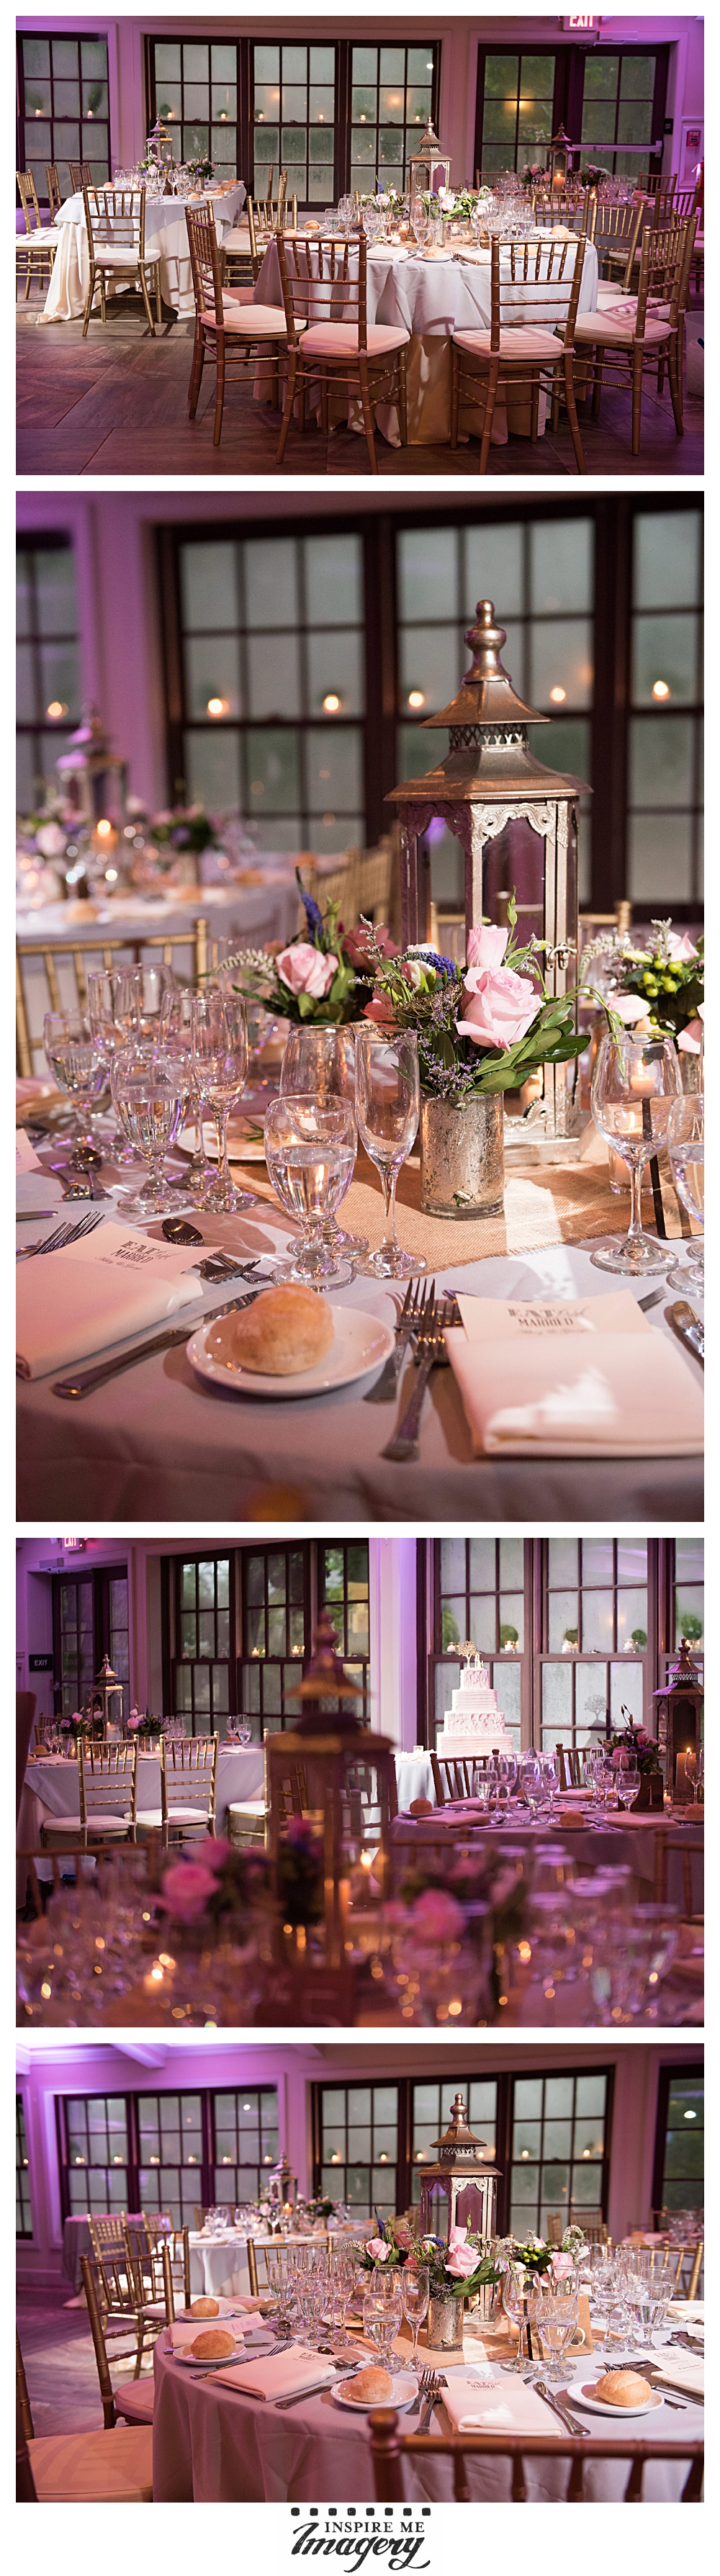 The reception area was gorgeous. The purple uplighting lent a beautiful mood to the candlelit room and complimented the soft flower arrangements. Look at those awesome lantern centerpieces!